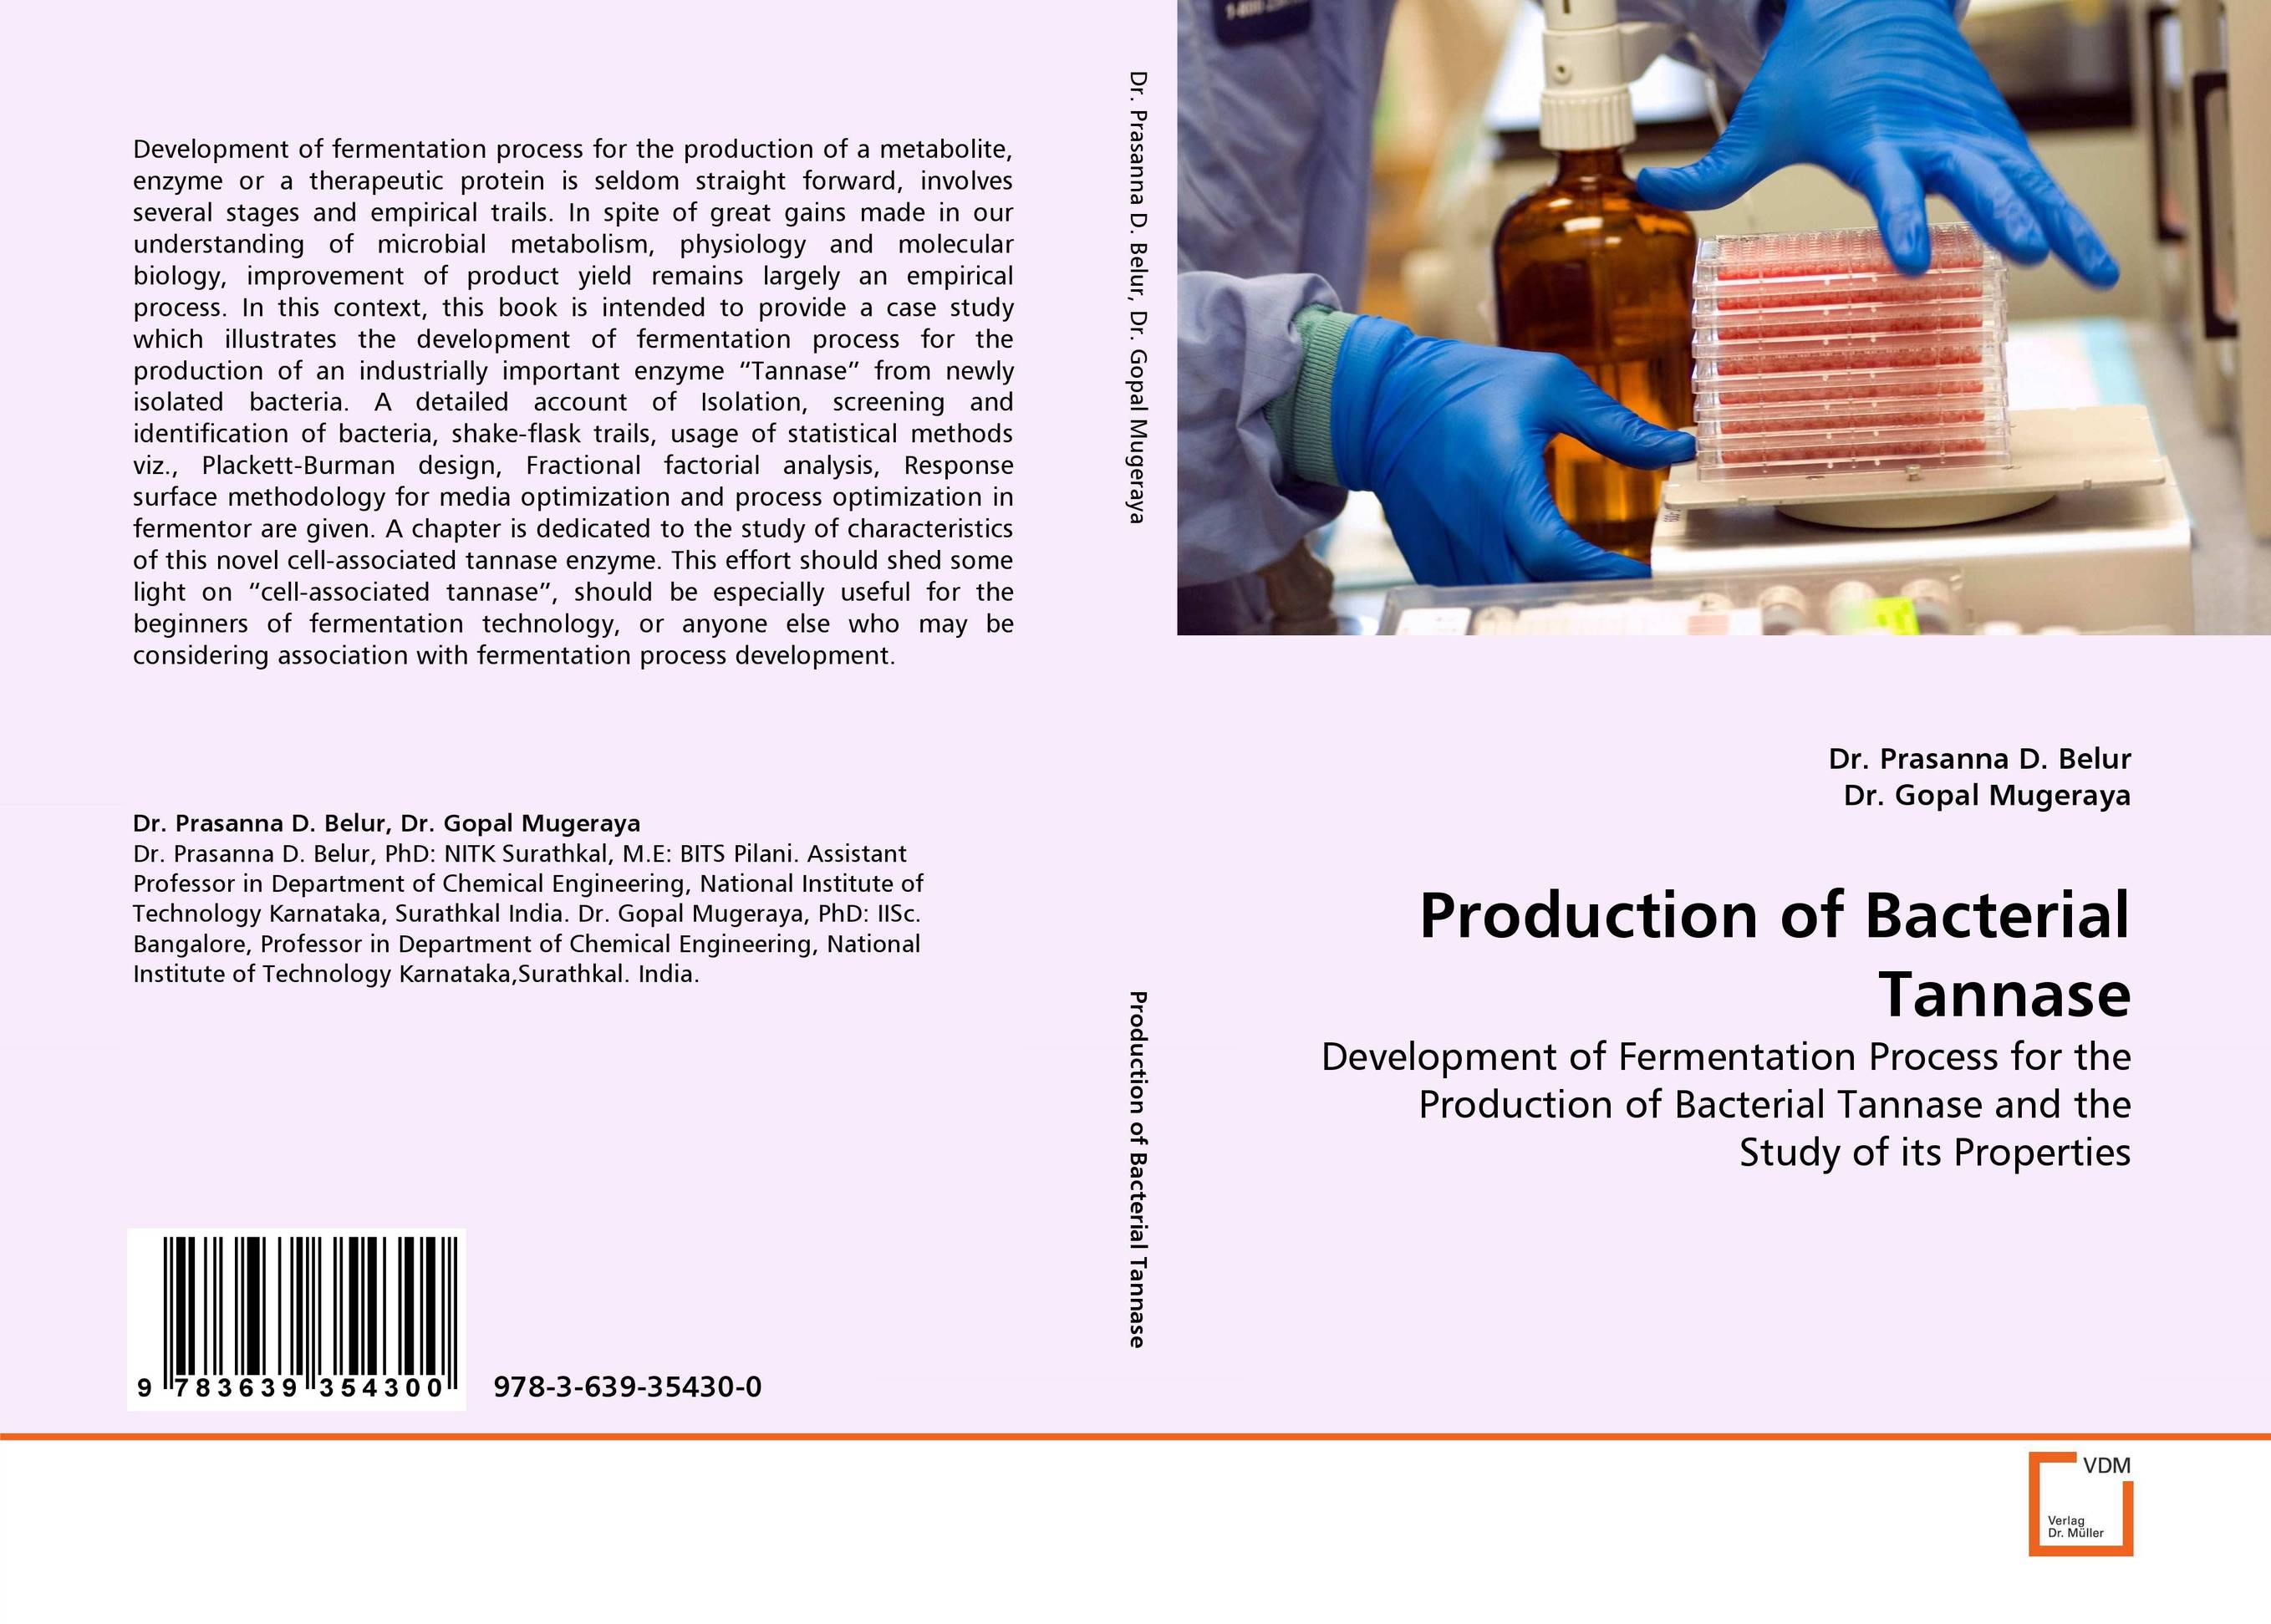 Production of Bacterial Tannase fermentation technology